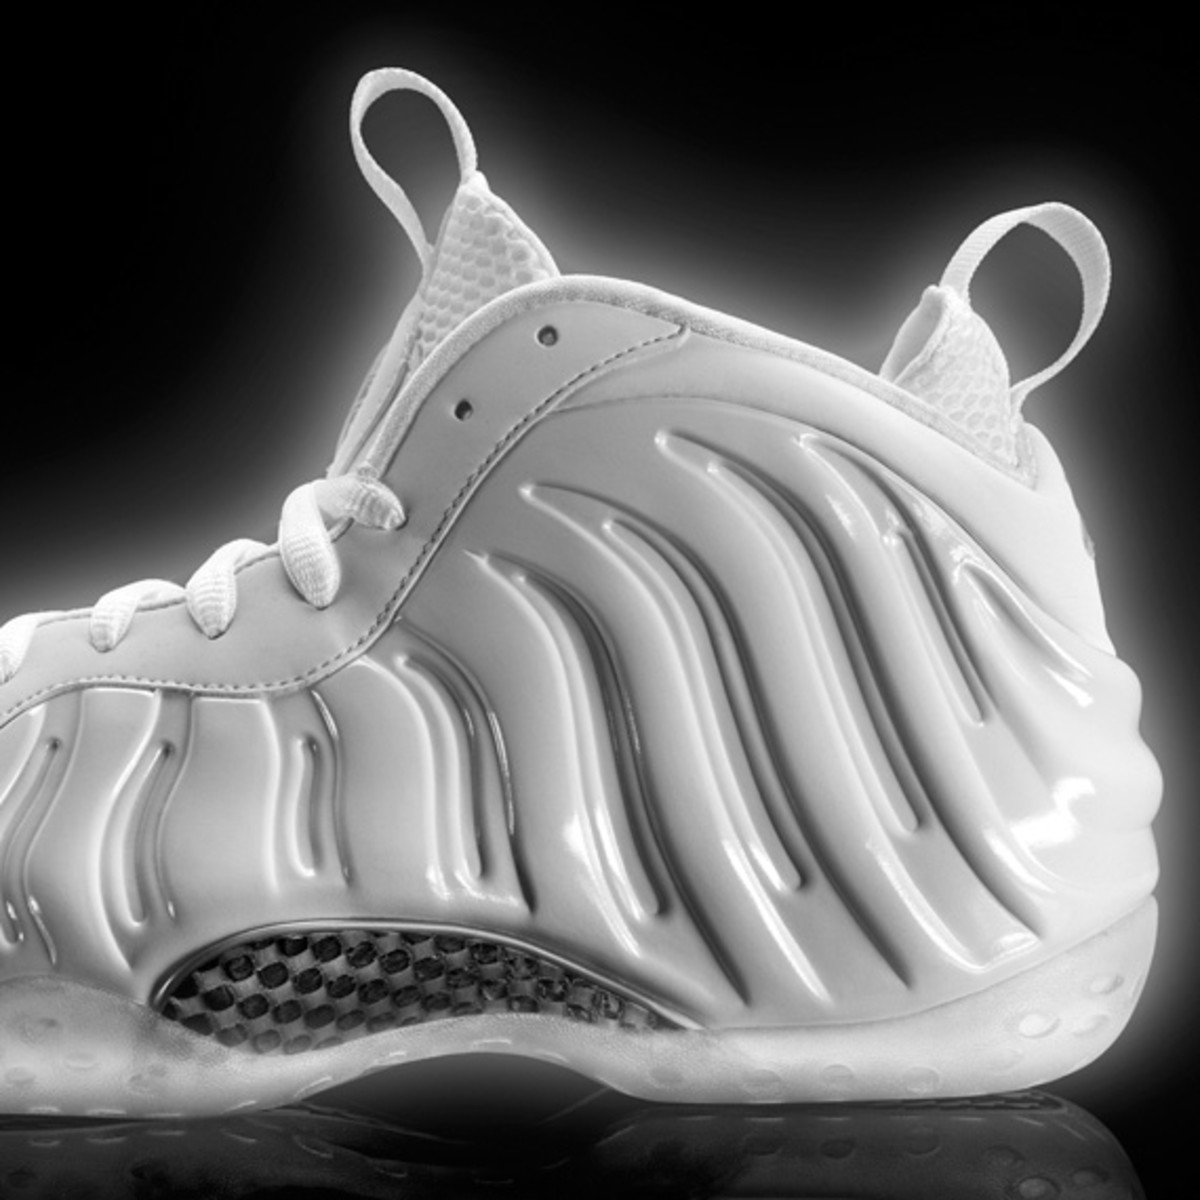 nike-air-foamposite-one-white-314996-100-03